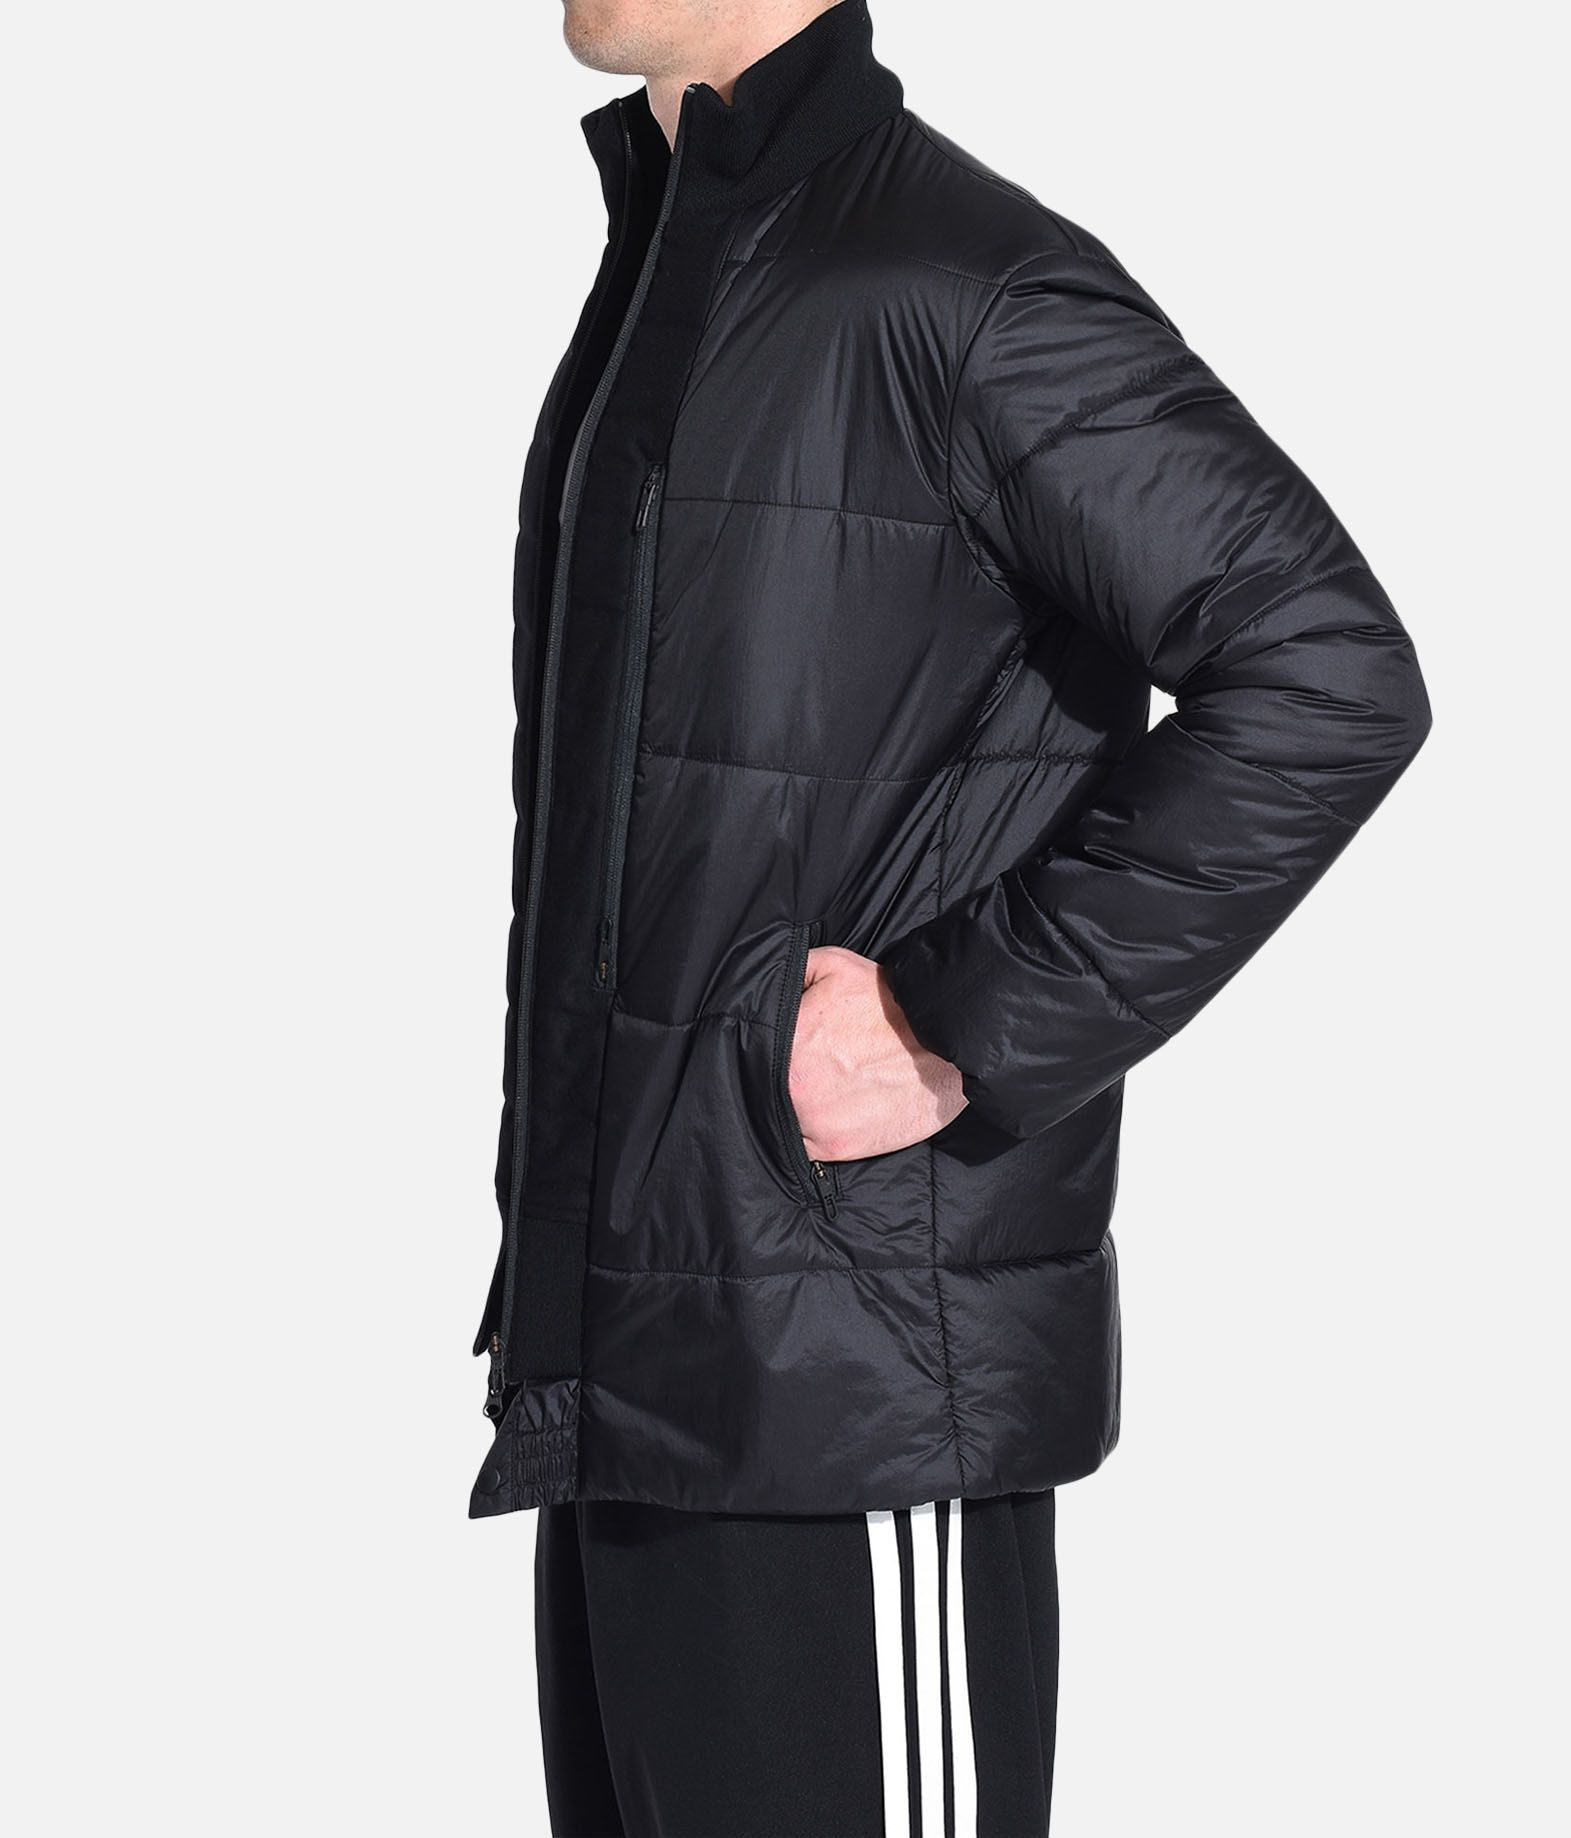 Y-3 Y-3 Patchwork Down Jacket ダウン メンズ e